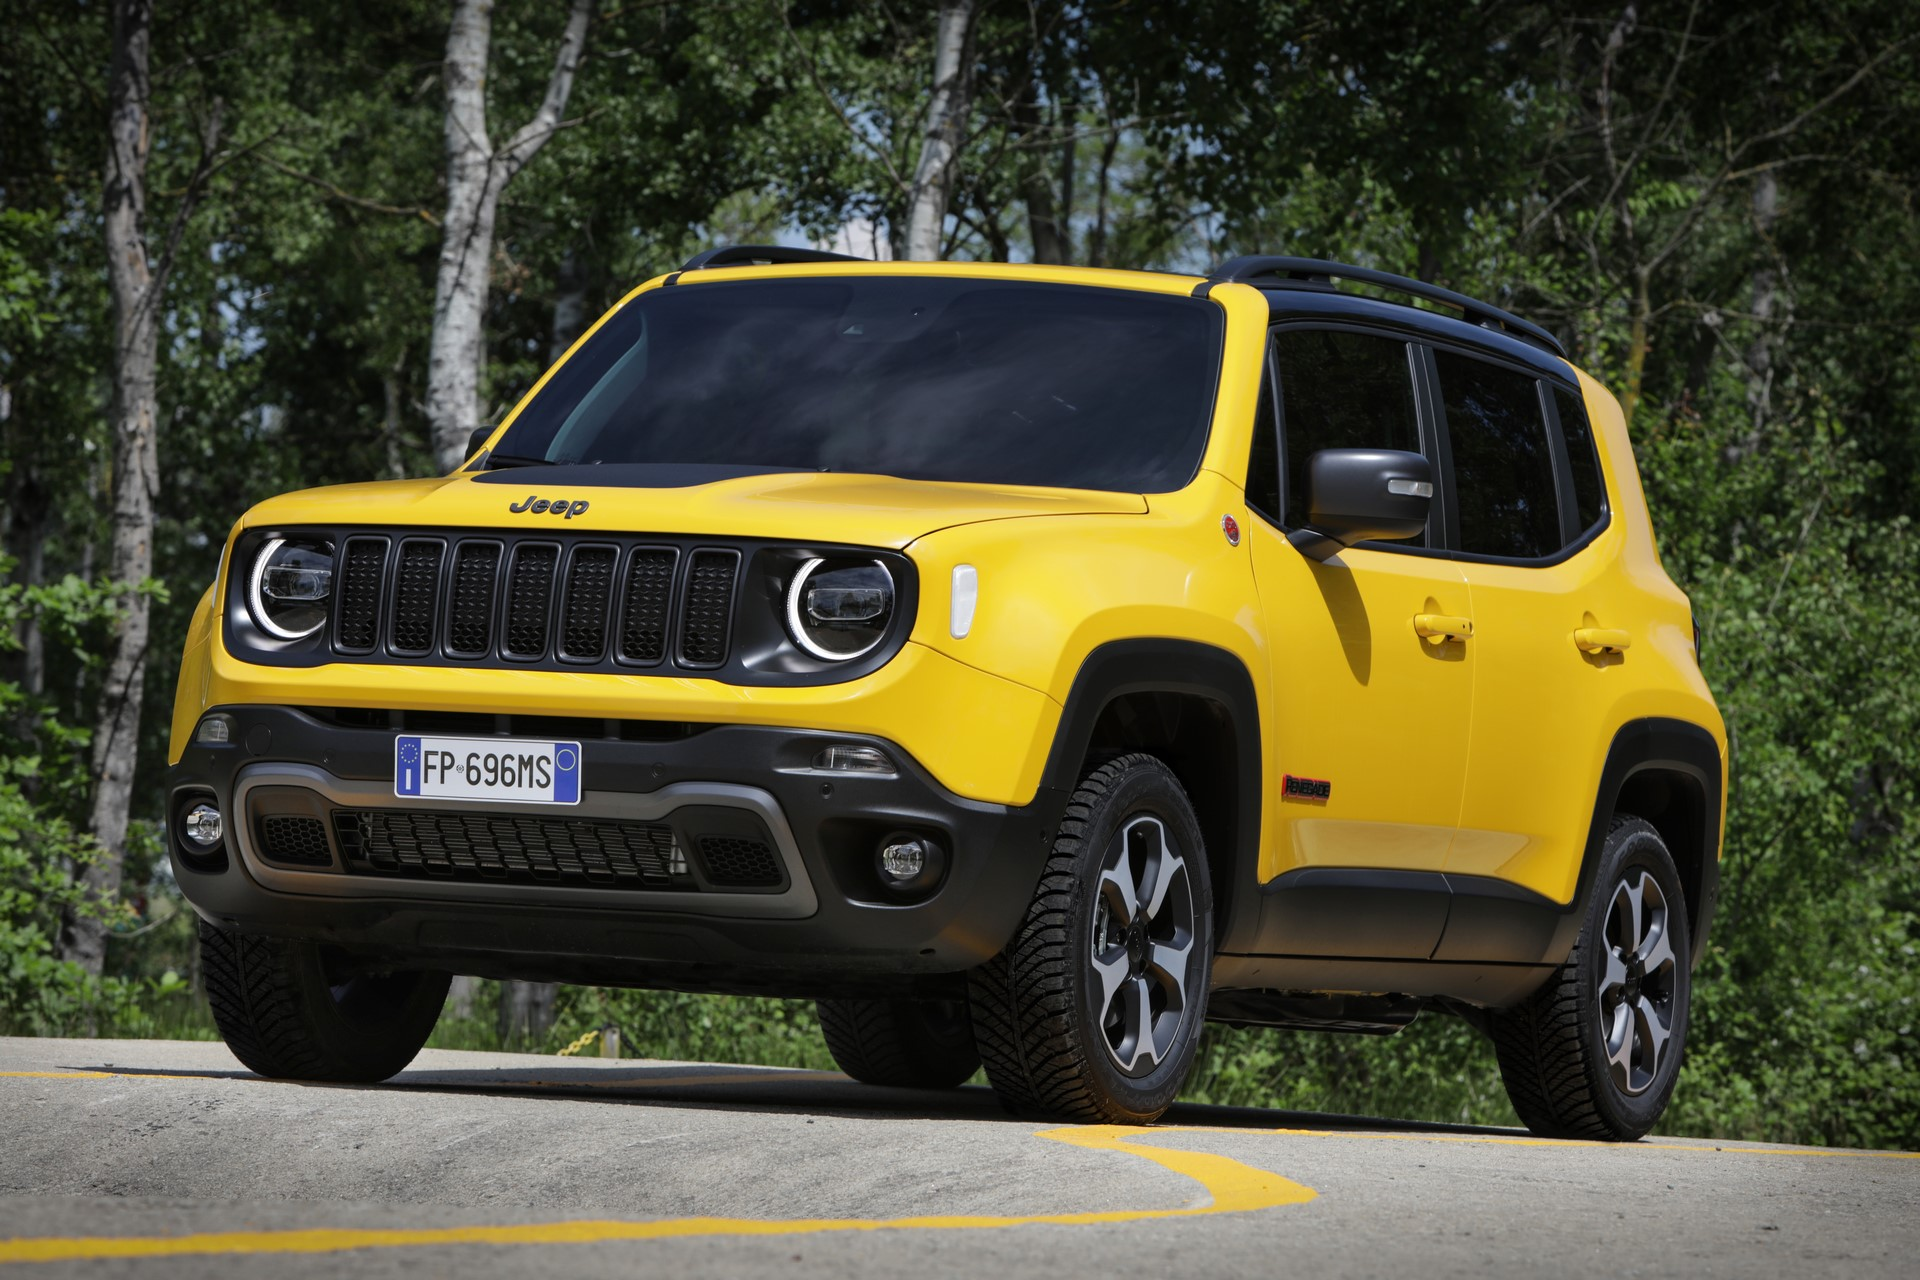 Jeep Renegade facelift 2019 (58)